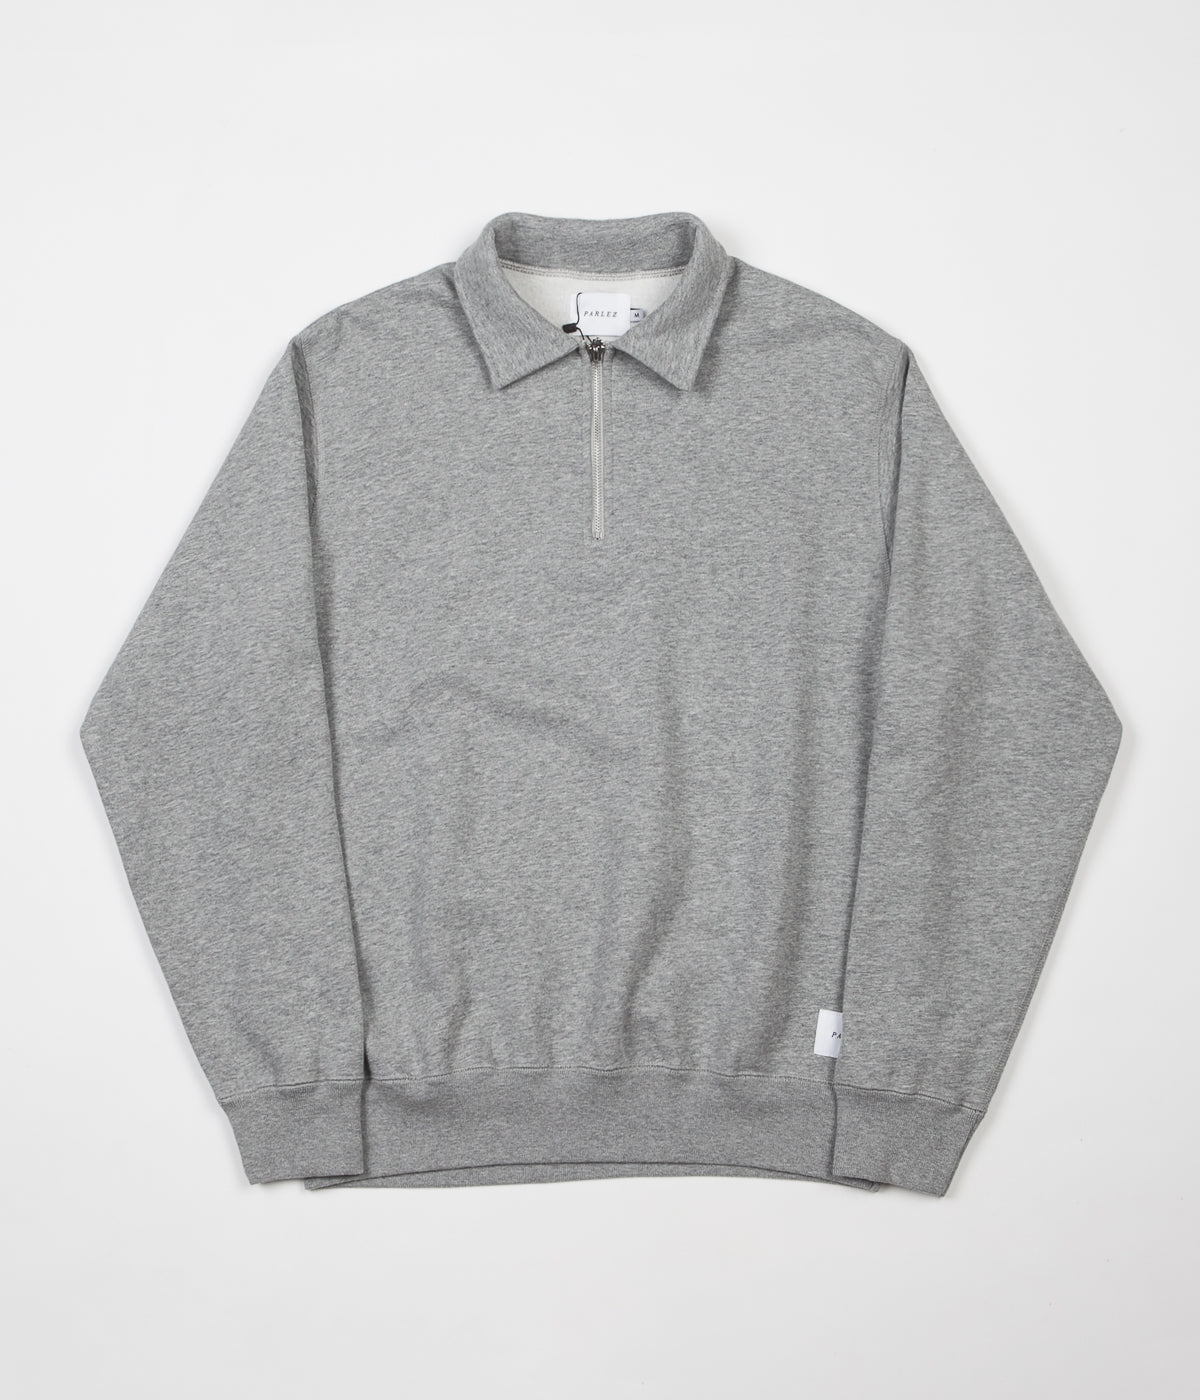 Parlez Sigurd 16oz 1/4 Zip Sweatshirt - Heather